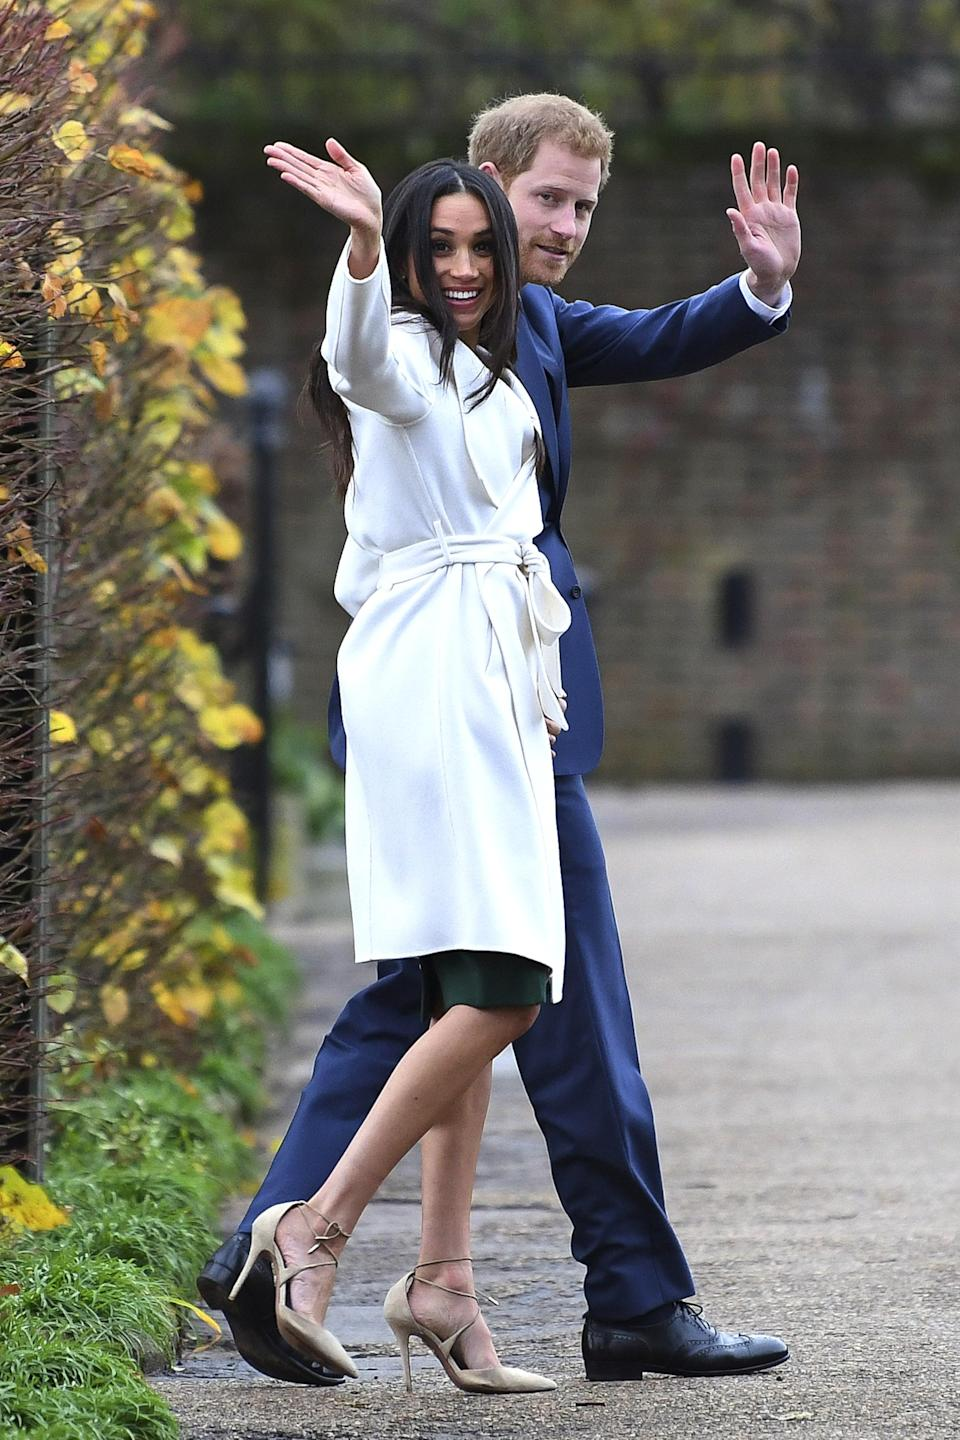 <p>According to The Cut, there's an unspoken rule among royals that dictate women wear hosiery. Queen Elizabeth has been wearing pantyhose for 91 years, while Kate Middleton prefers glossy, sheer nylons.<br>Meghan bravely decided to keep her legs bare, perhaps another sign that the royal family is becoming modern.</p>